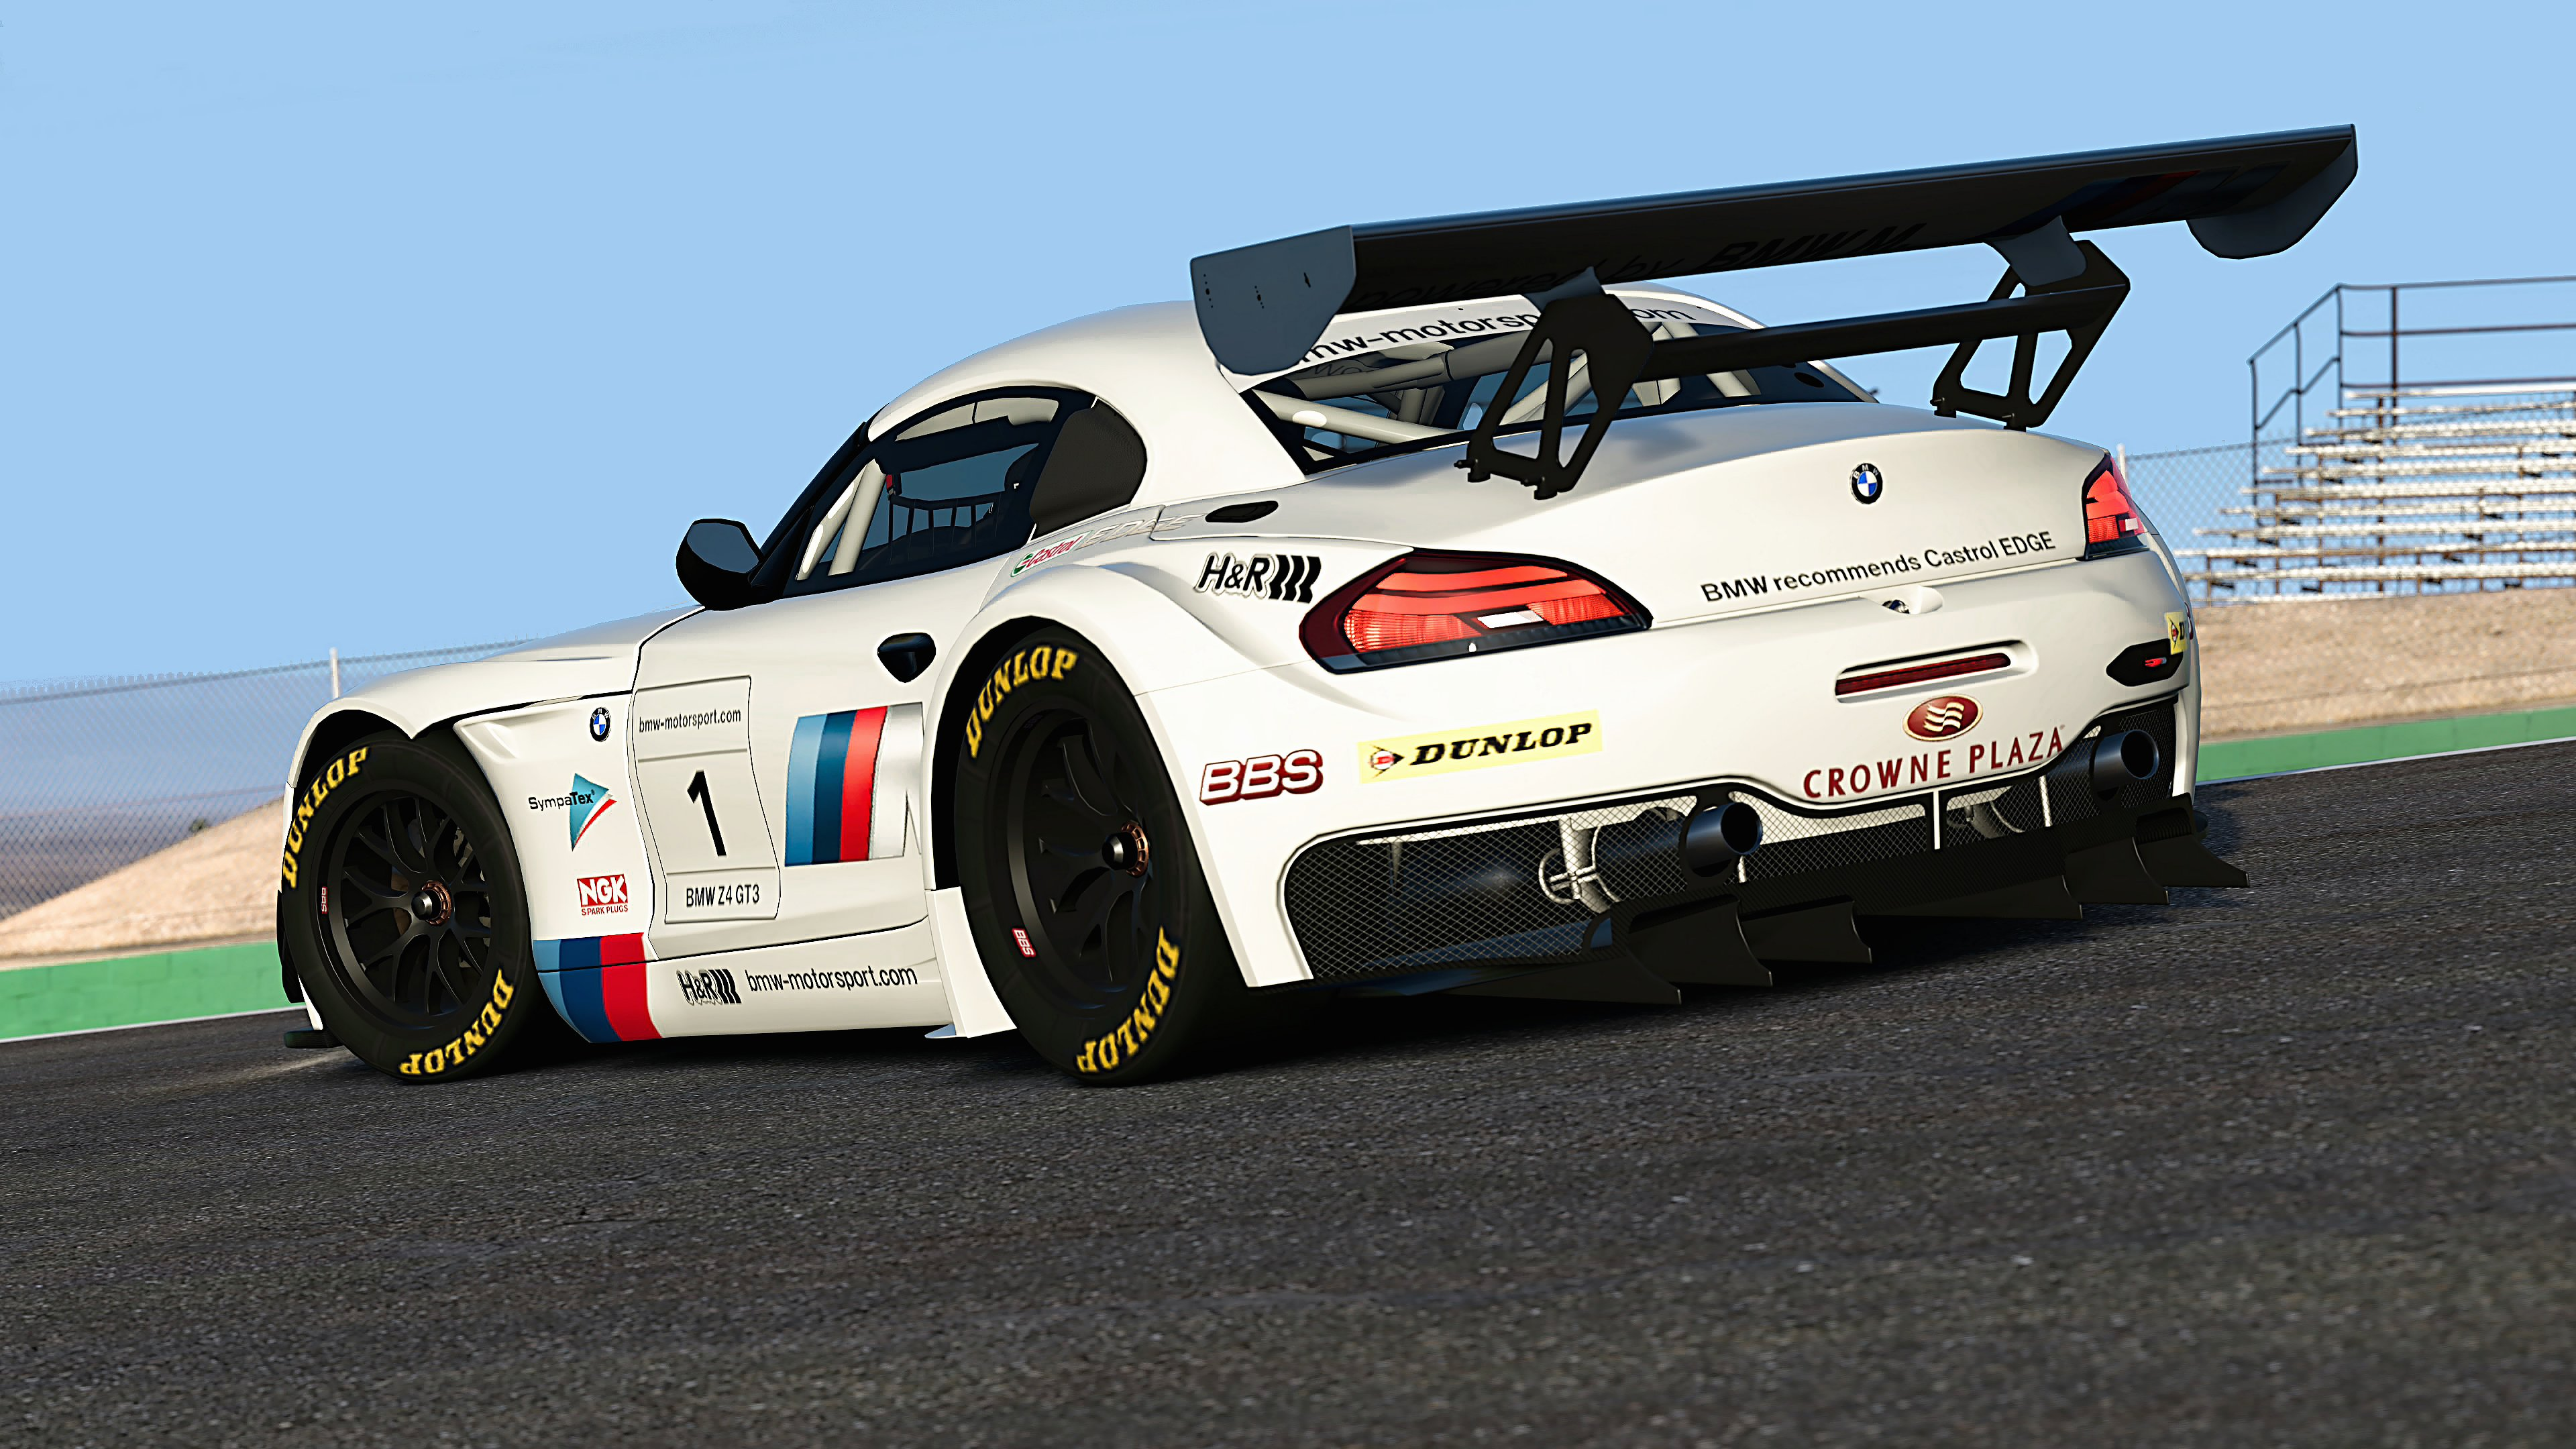 Bmw Z4 Gt3 Wallpaper 3840x2160 296874 Wallpaperup